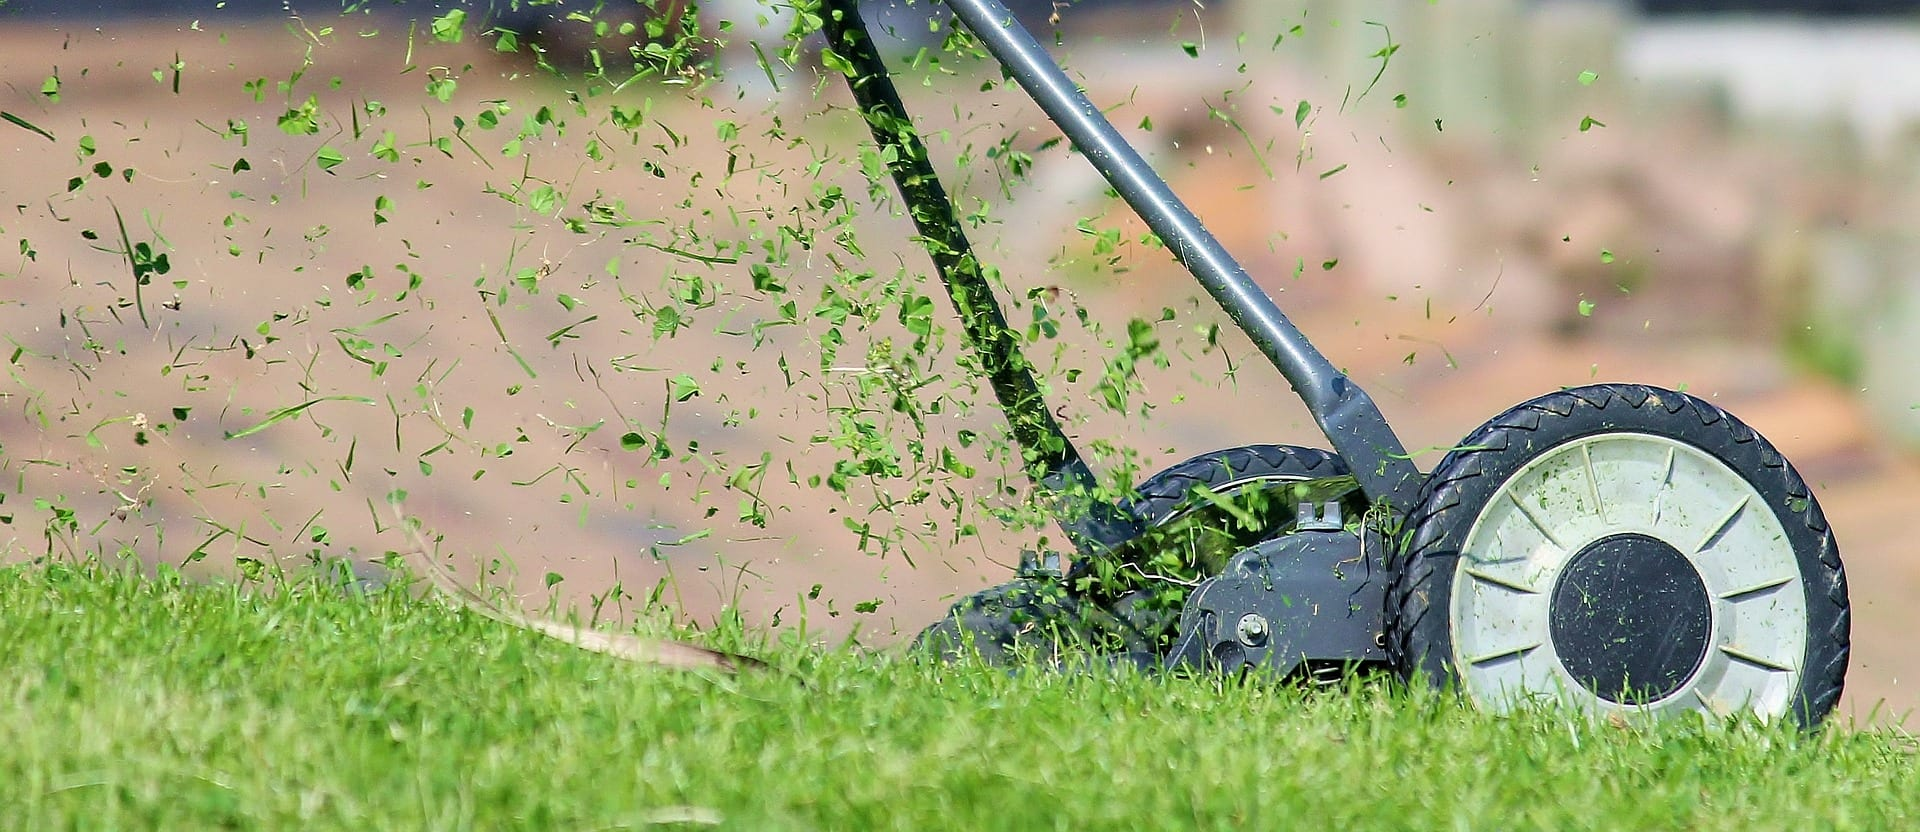 Environmental Benefits of Organic Lawns